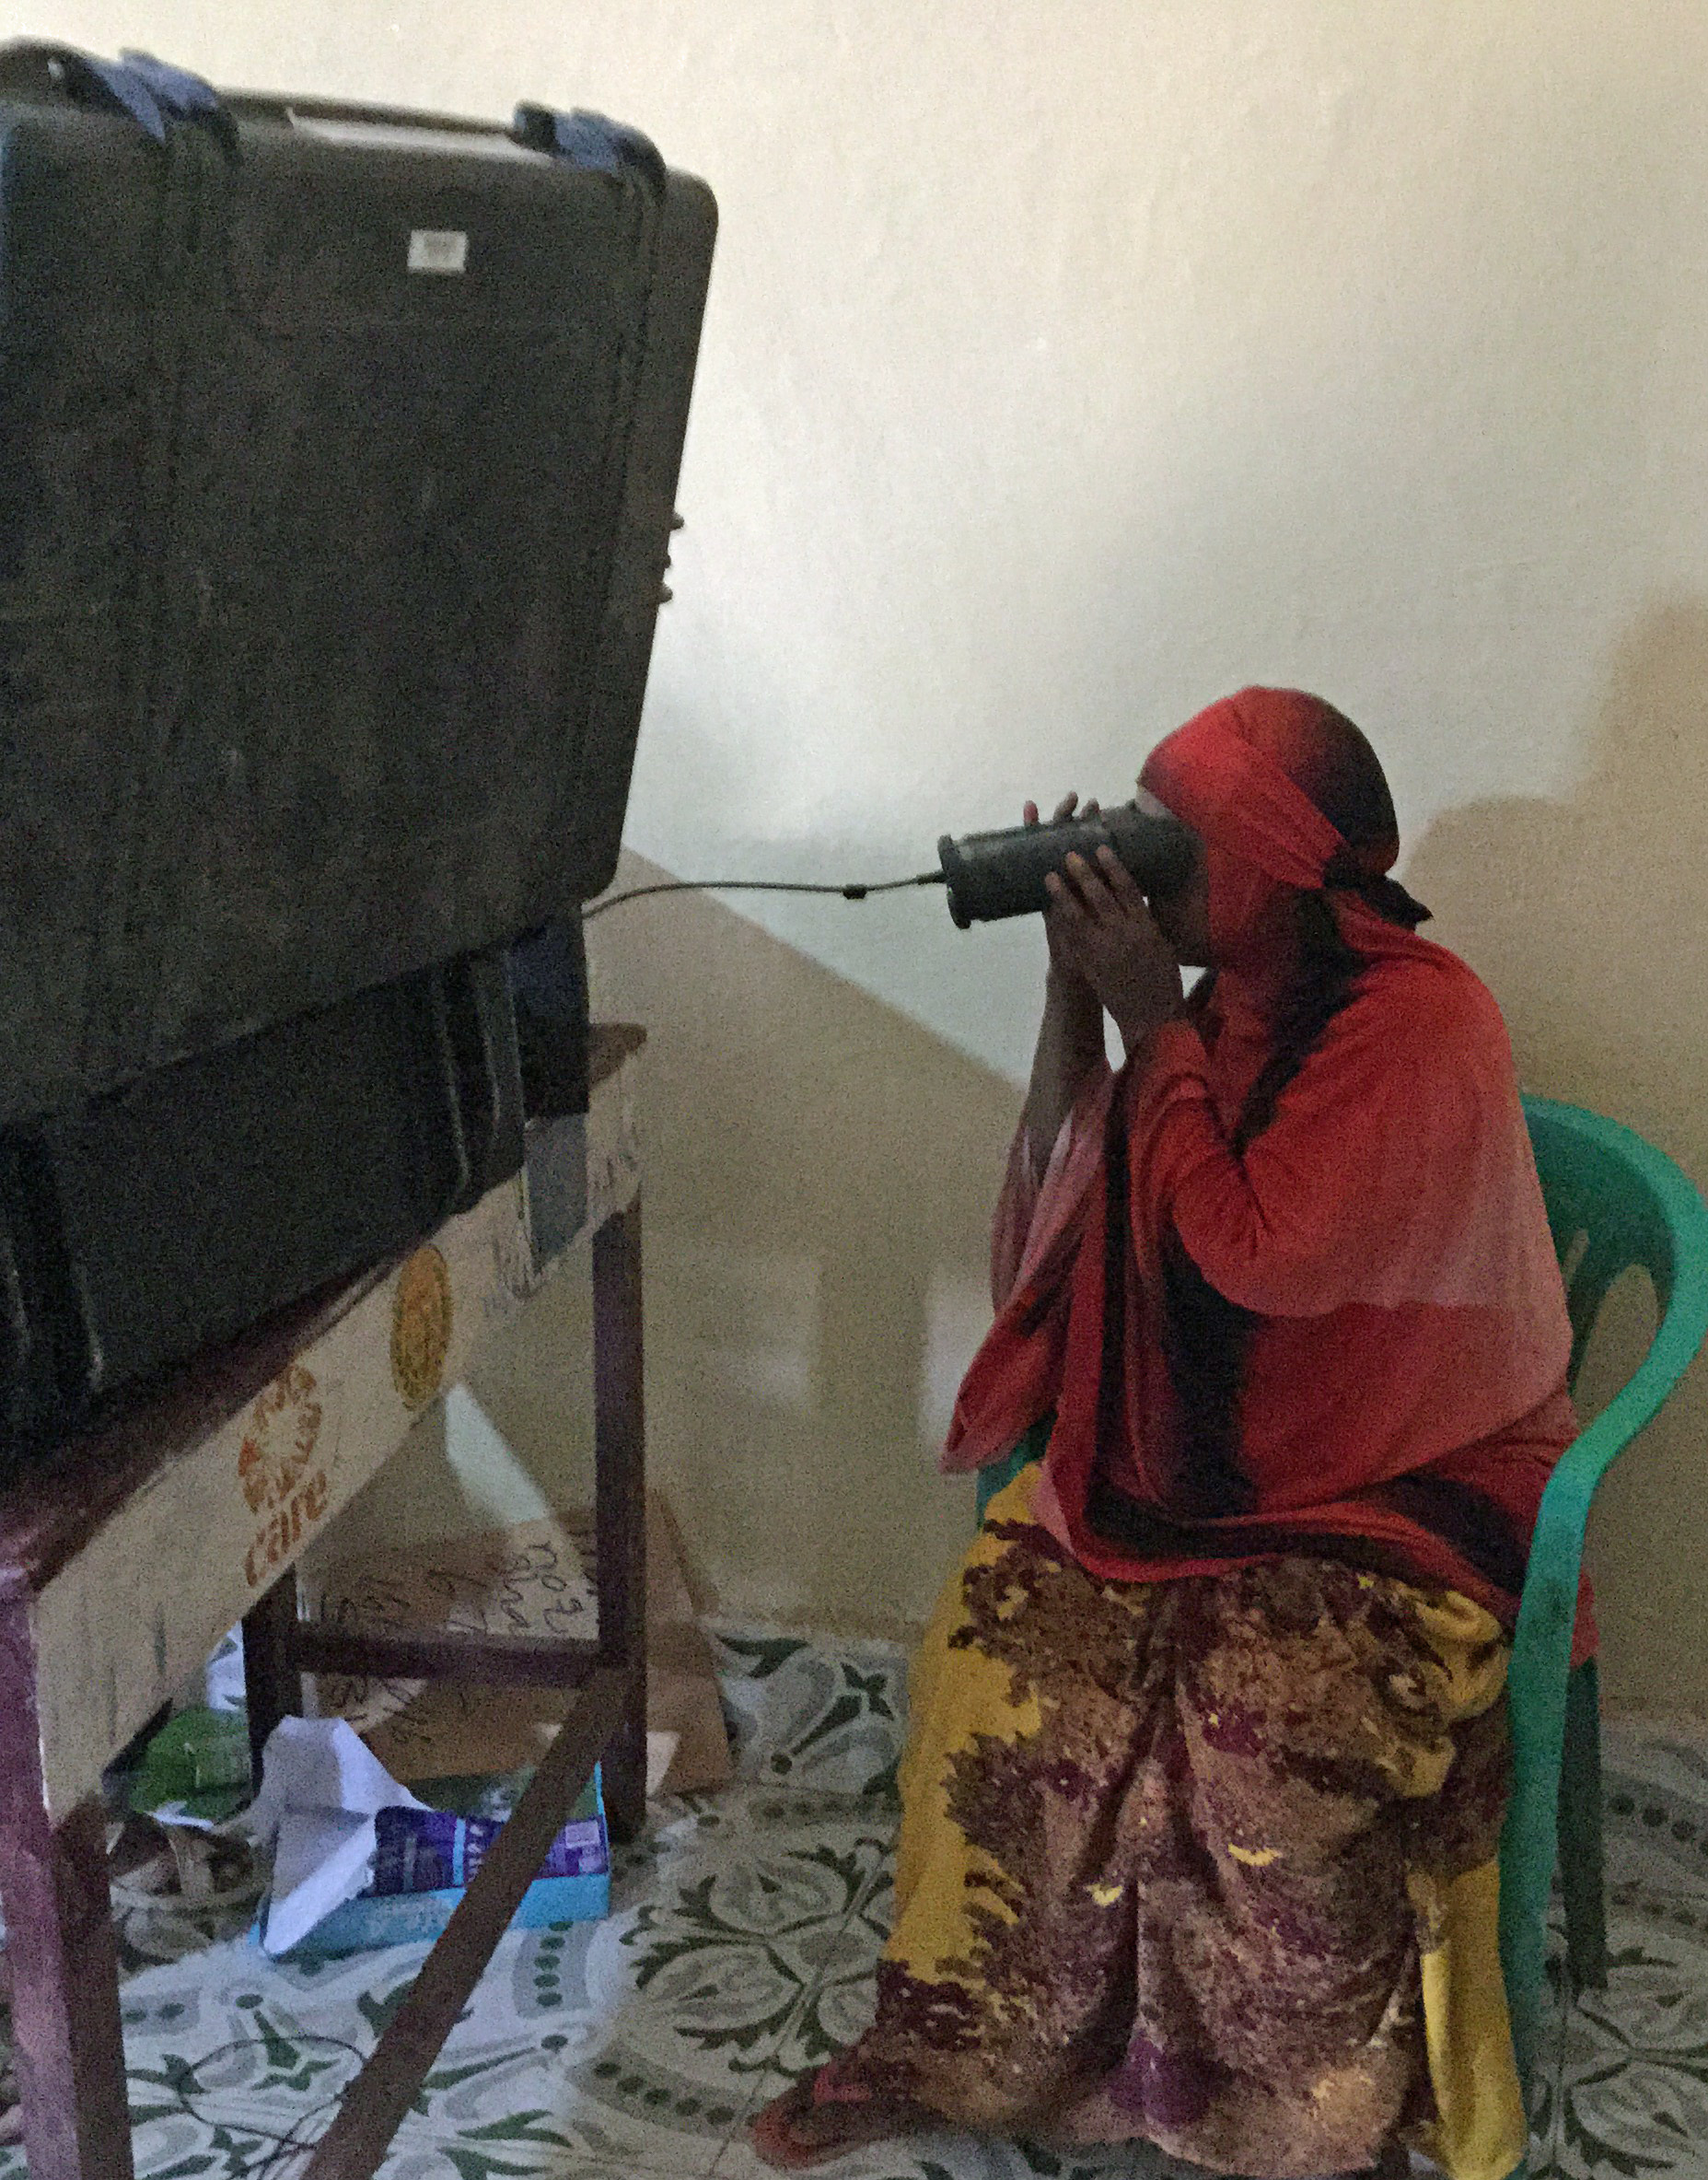 A female voter uses new iris-recognition technology